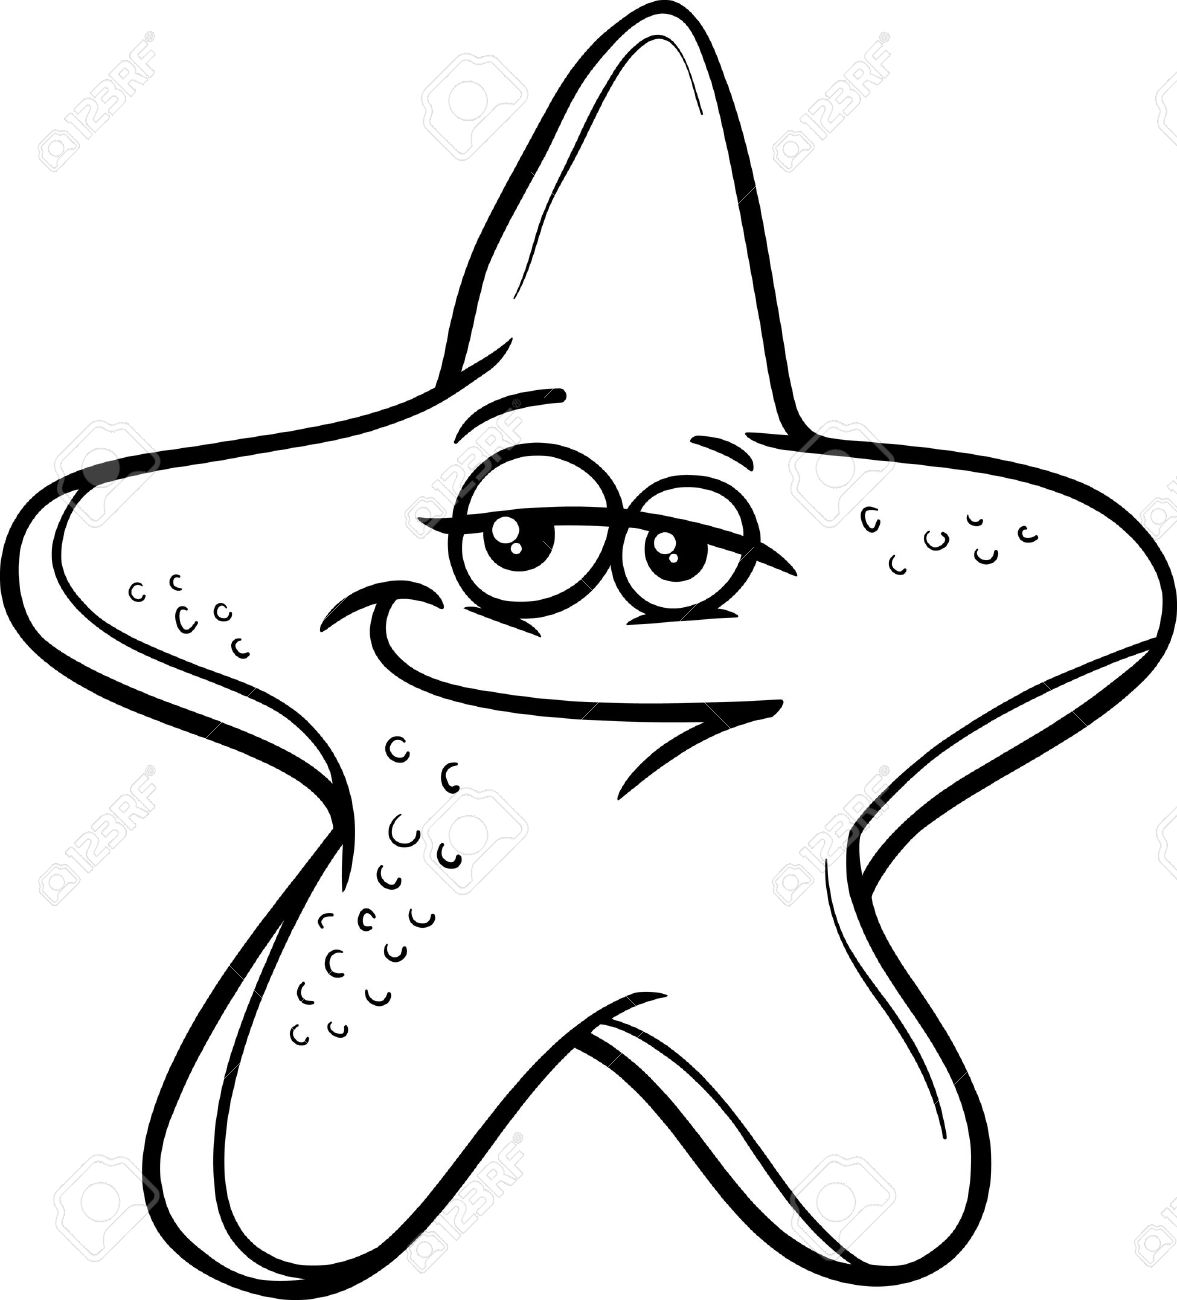 Black And White Cartoon Illustration Of Funny Starfish Sea Animal ... for Starfish Clipart Black And White  103wja